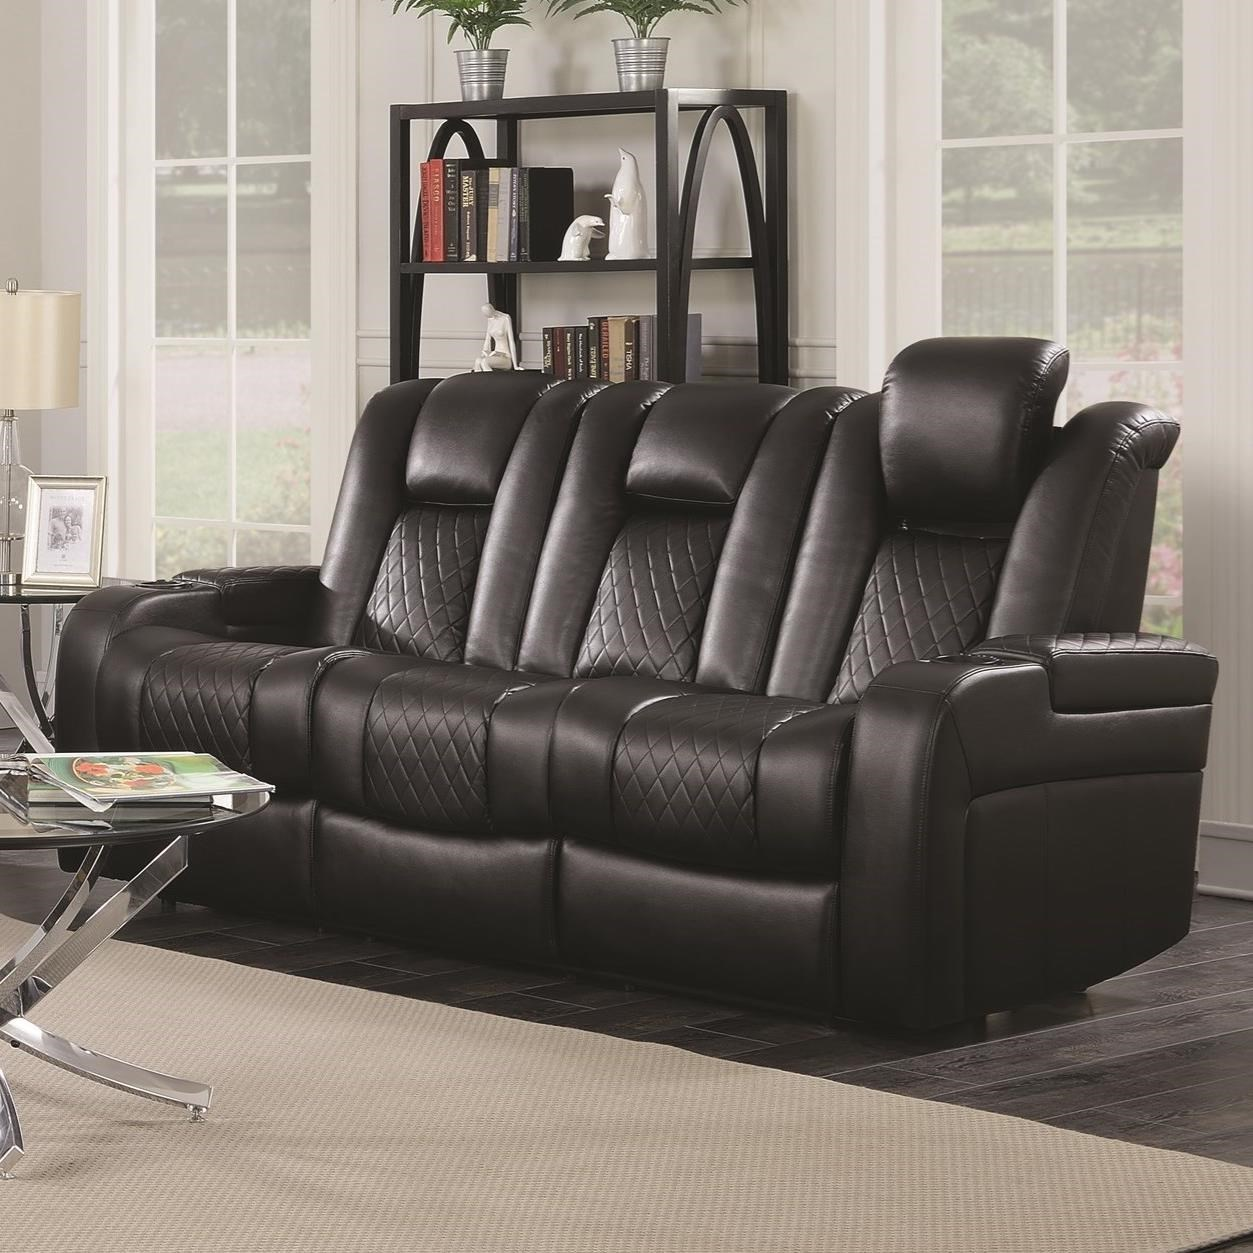 Charmant Coaster Delangelo Casual Power Reclining Sofa With Cup Holders, Storage  Console And USB Port